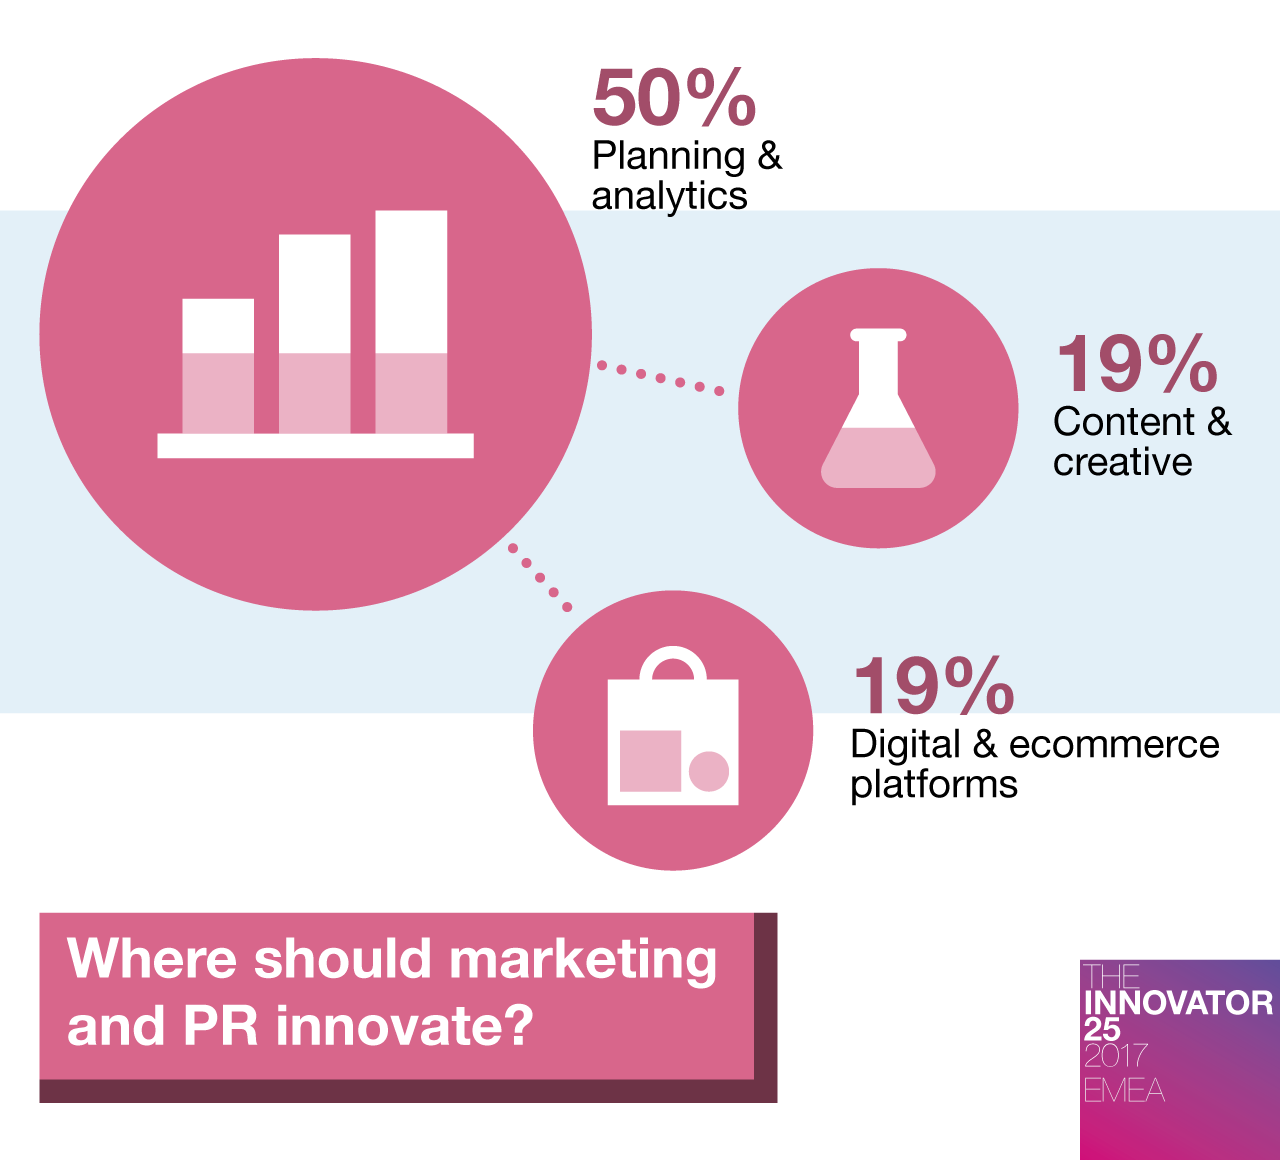 Innovator 25 EMEA - Where should marketing and PR innovate